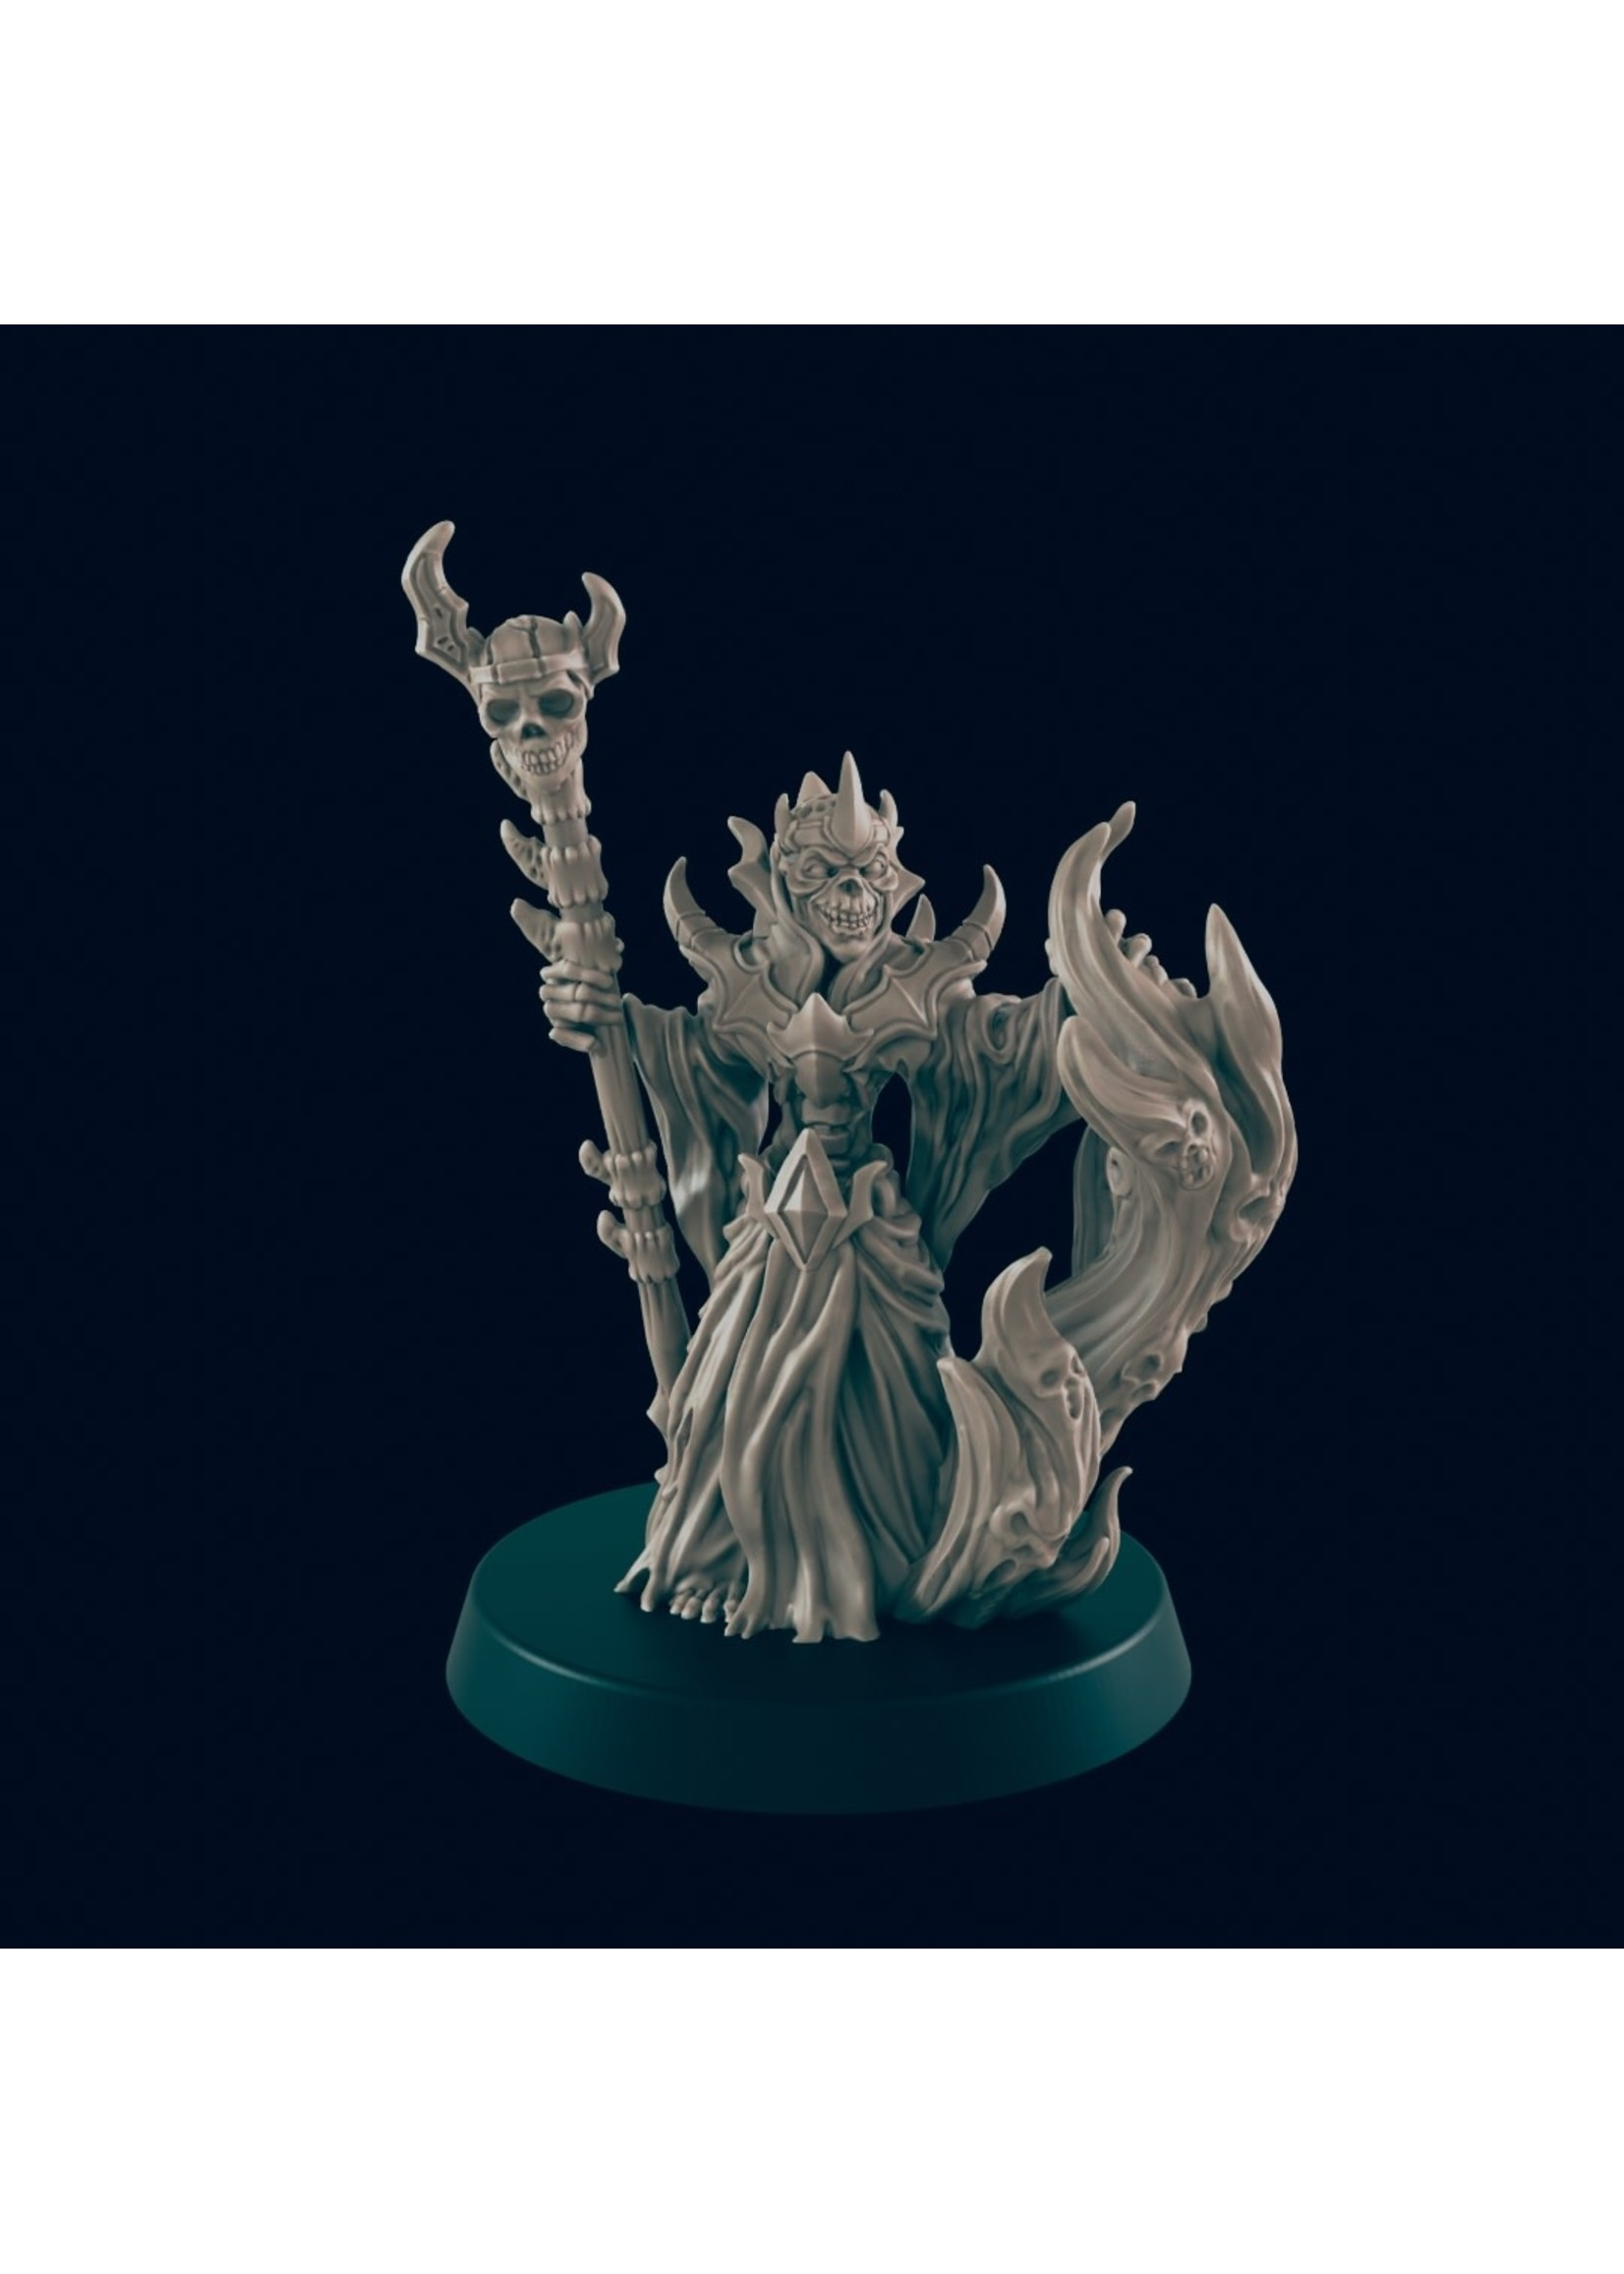 3D Printed Miniature - Lich - Dungeons & Dragons - Beasts and Baddies KS